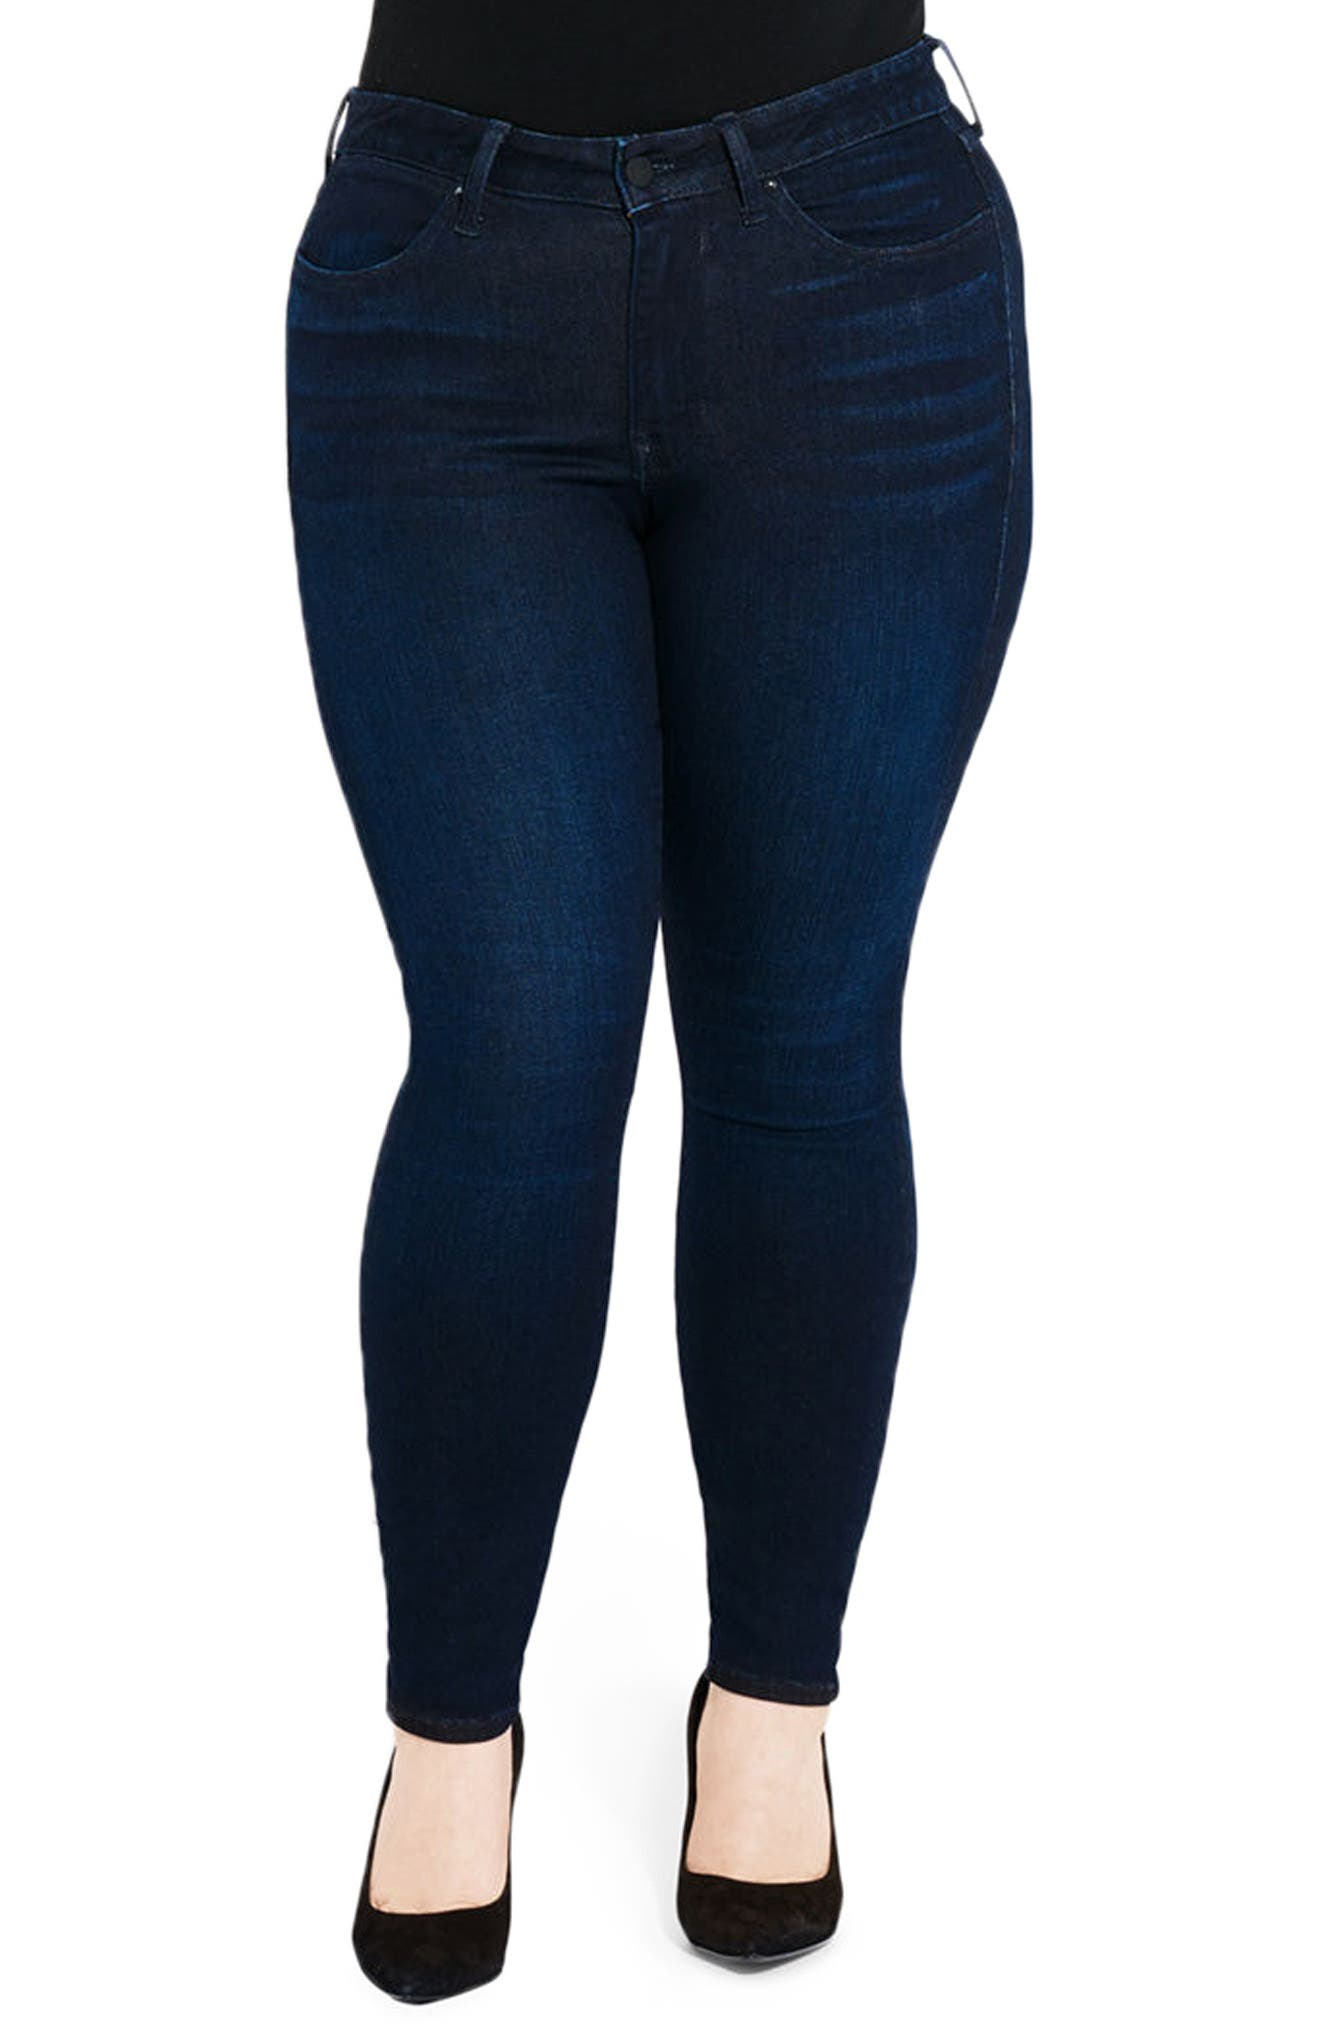 Alternate Image 1 Selected - AYR The One Love High Waist Skinny Jeans (Jac's Jean) (Plus Size)